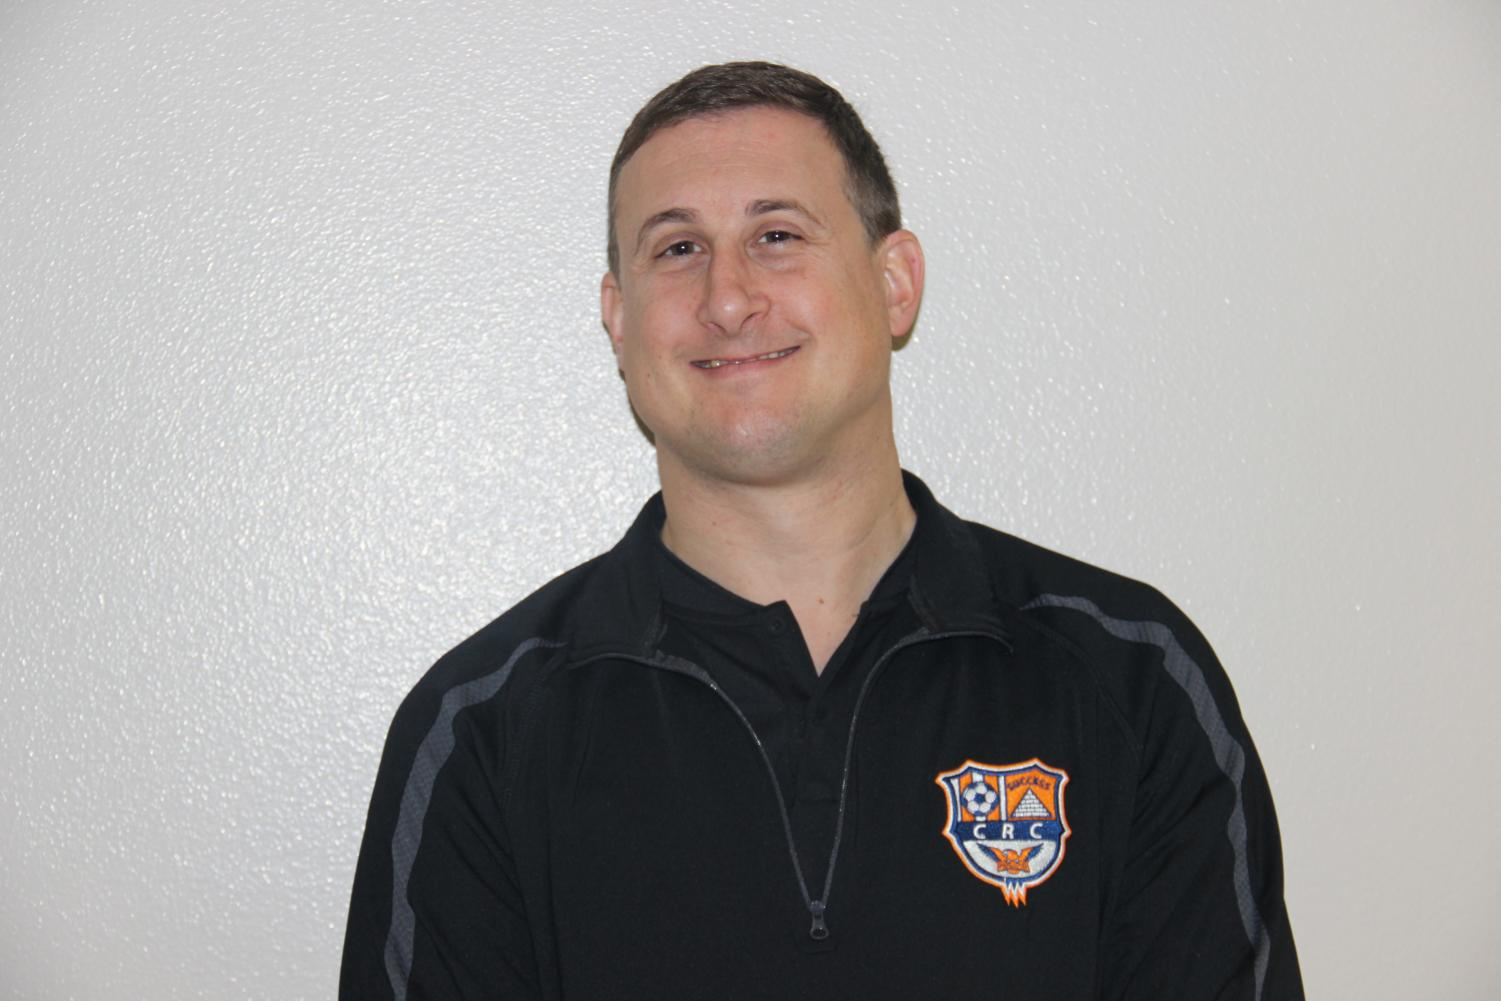 Matthew Wohl, Cosumnes River Hawks' athletic counselor, aims to meet with every student athlete to help them have a successful career. As a counselor, student athletes like freshman volleyball defensive specialist Ainsley Backman said he is understanding.